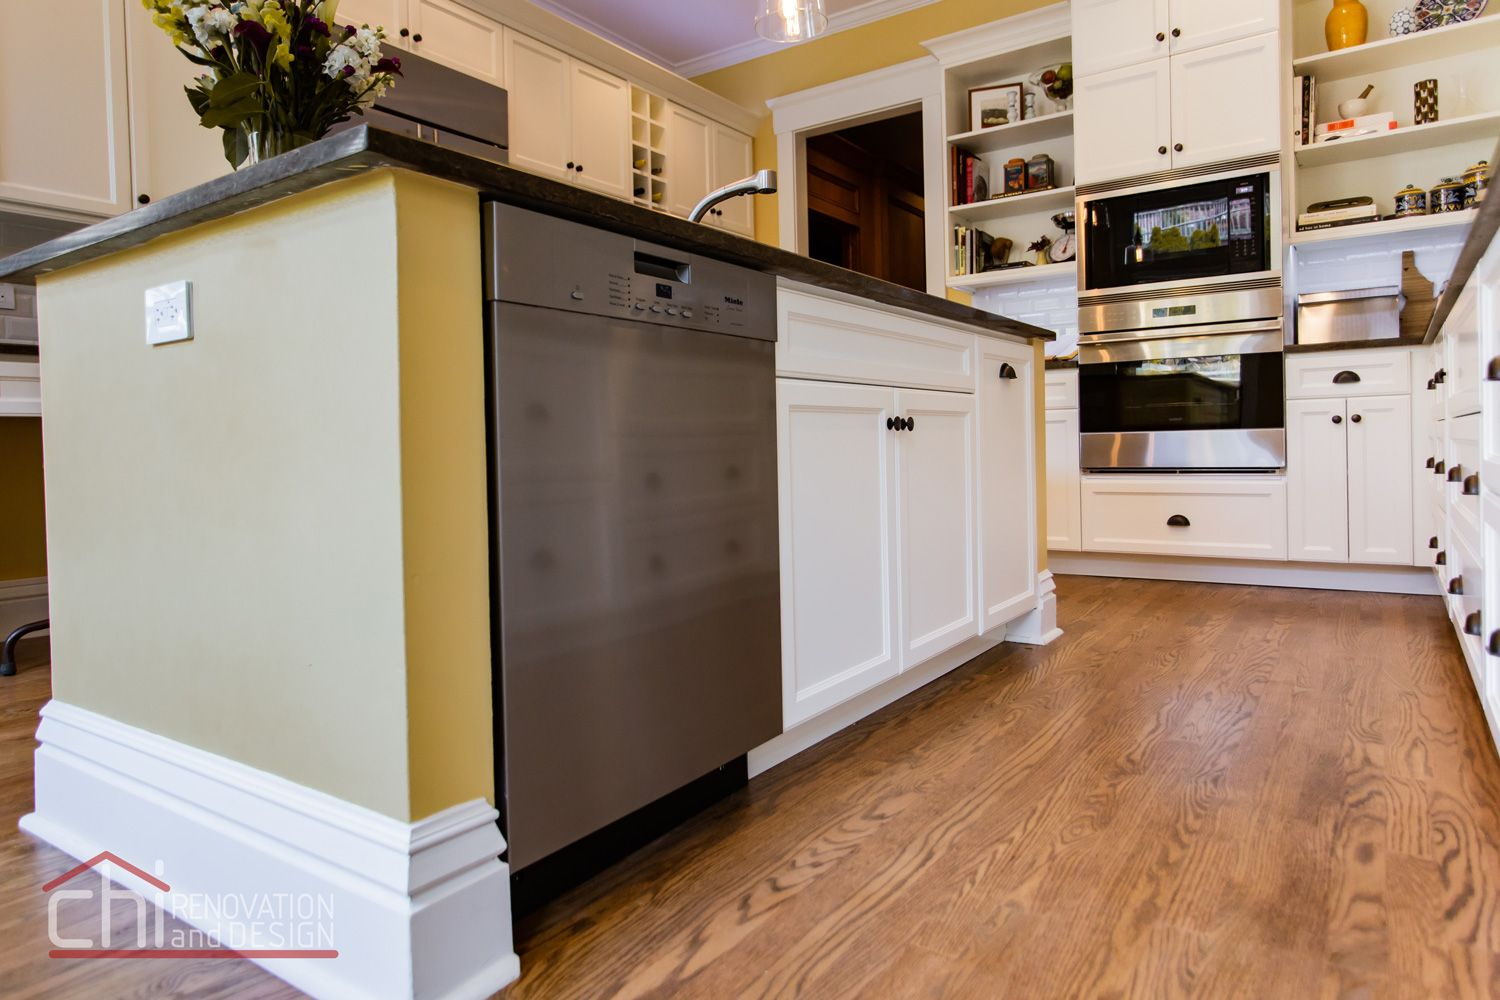 Chi Renovation Turns This Chicago Kitchen Into The Perfect Family Hangout Space Chirenovation Www Chirenova Kitchen Kitchen Design Kitchen Remodel Design